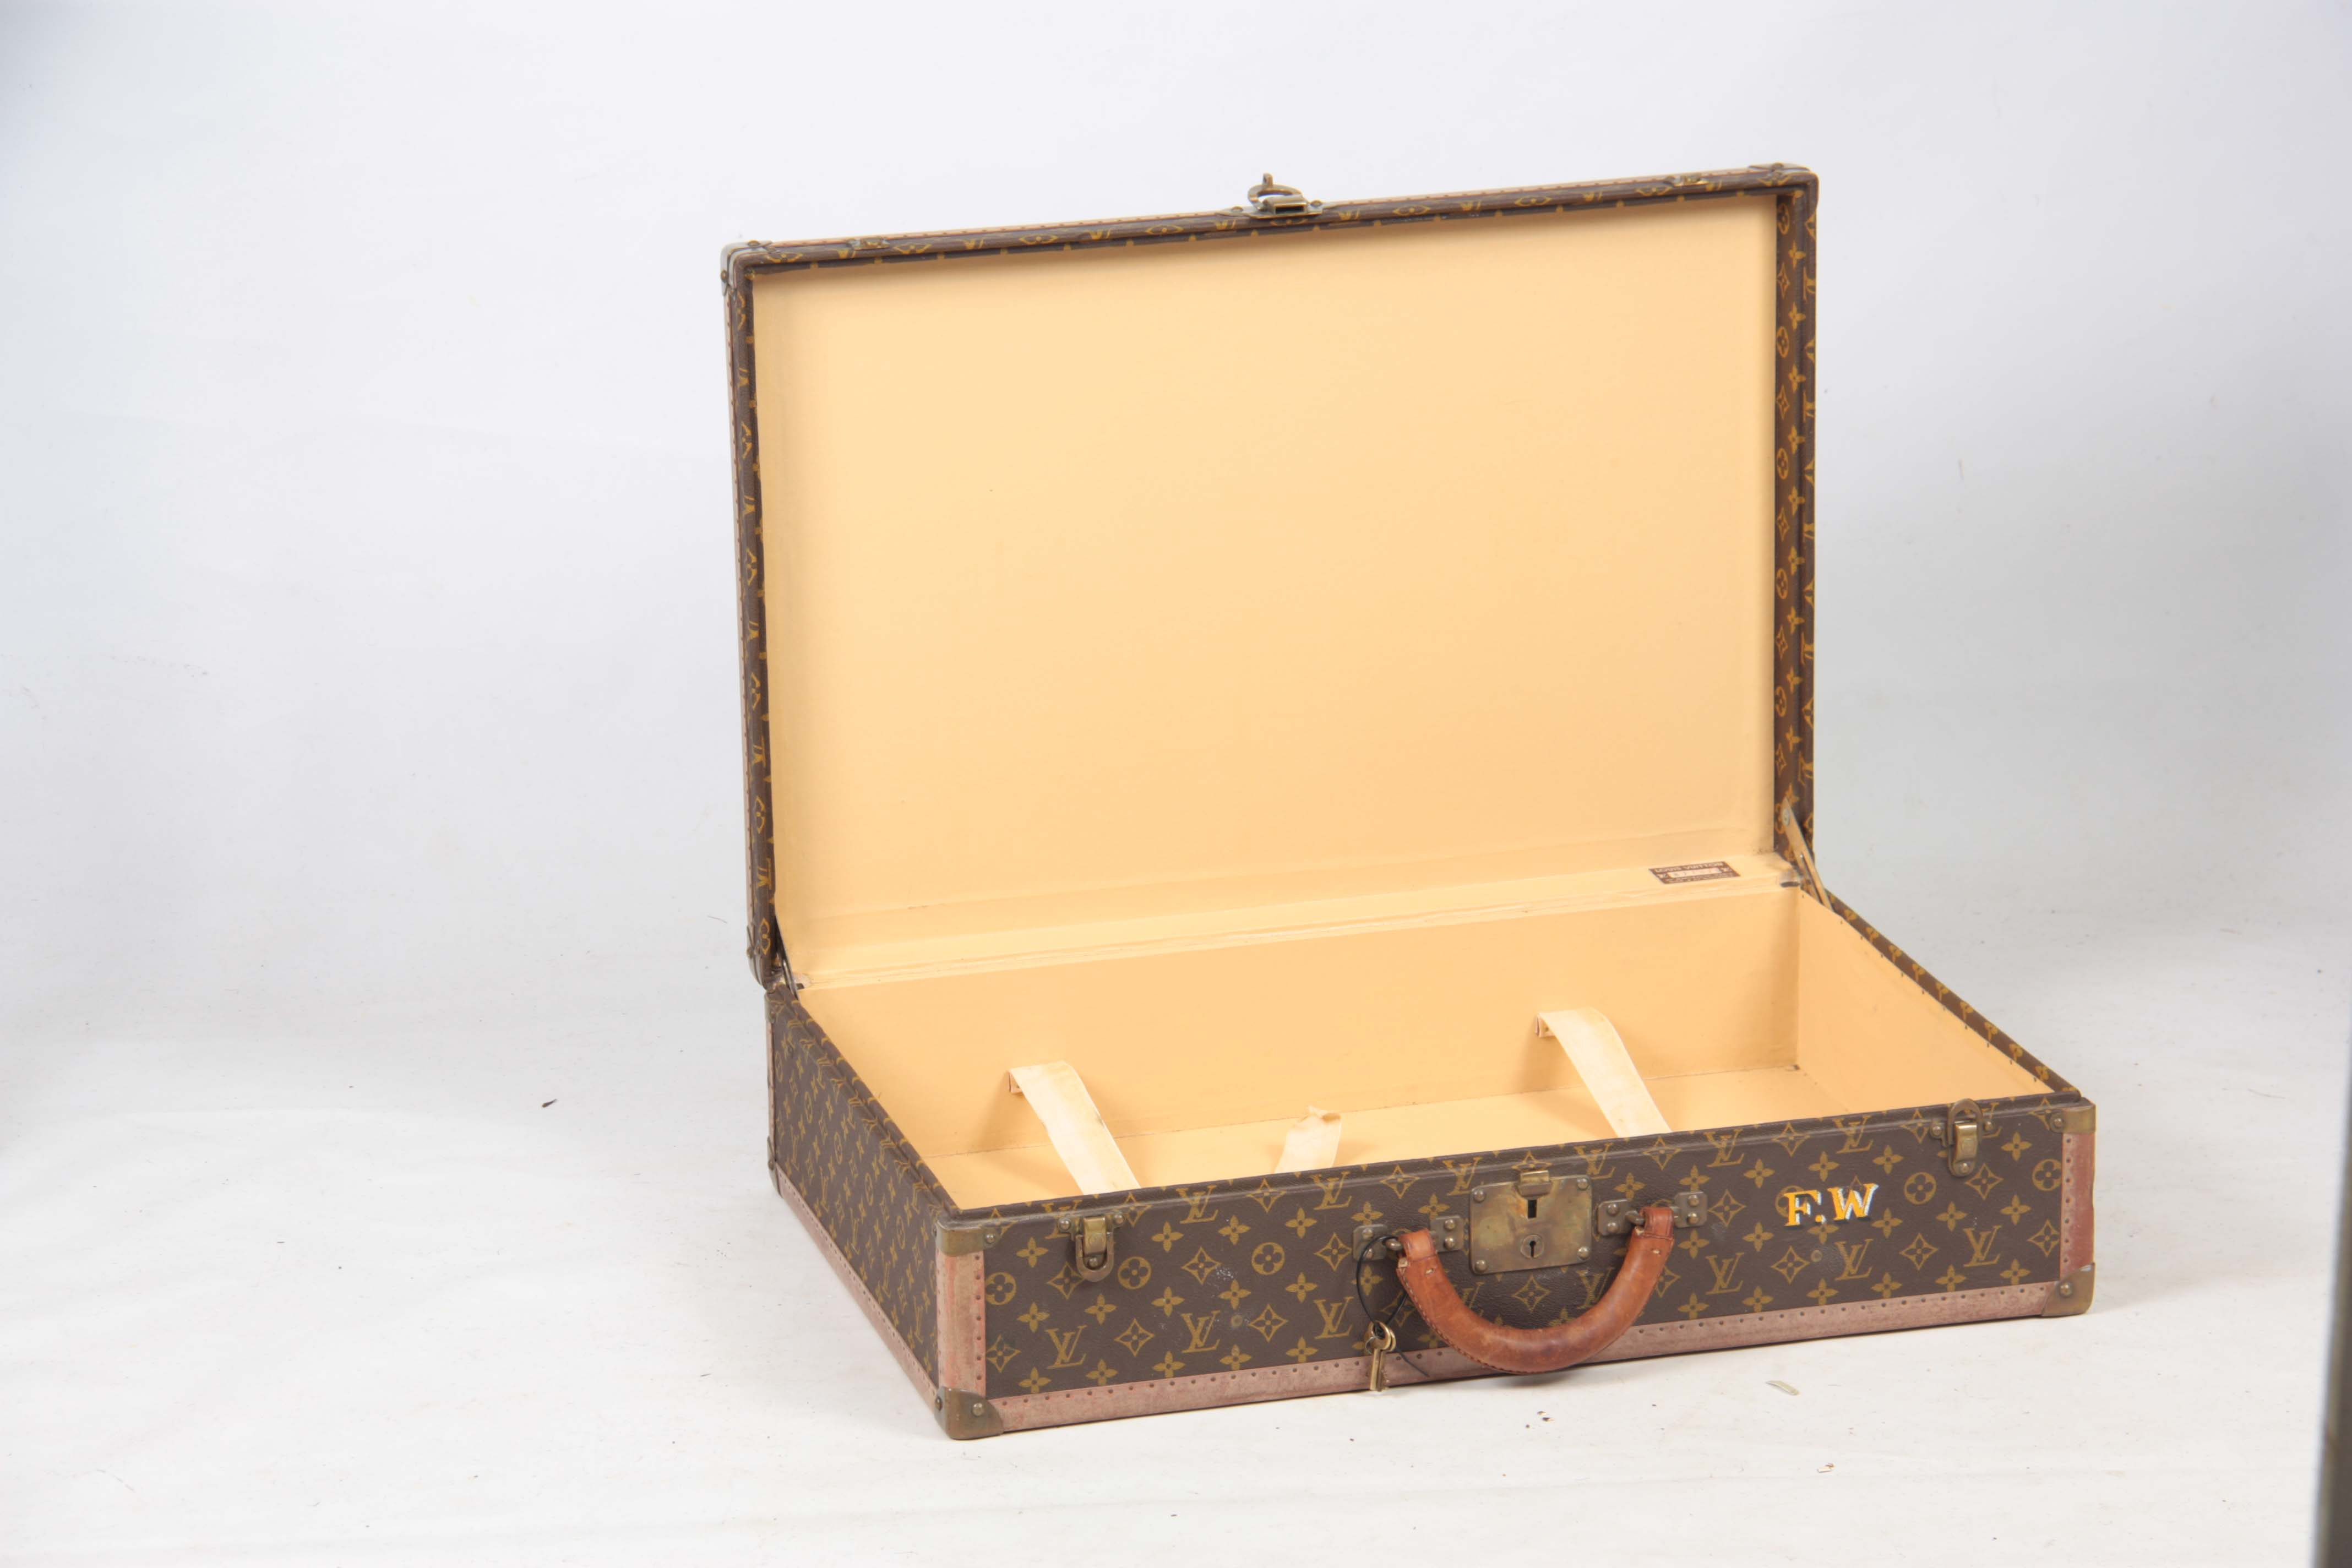 Lot 520 - A VINTAGE LOUIS VUITTON BROWN LEATHER SUITCASE with studded brass corner mounts, fasteners and